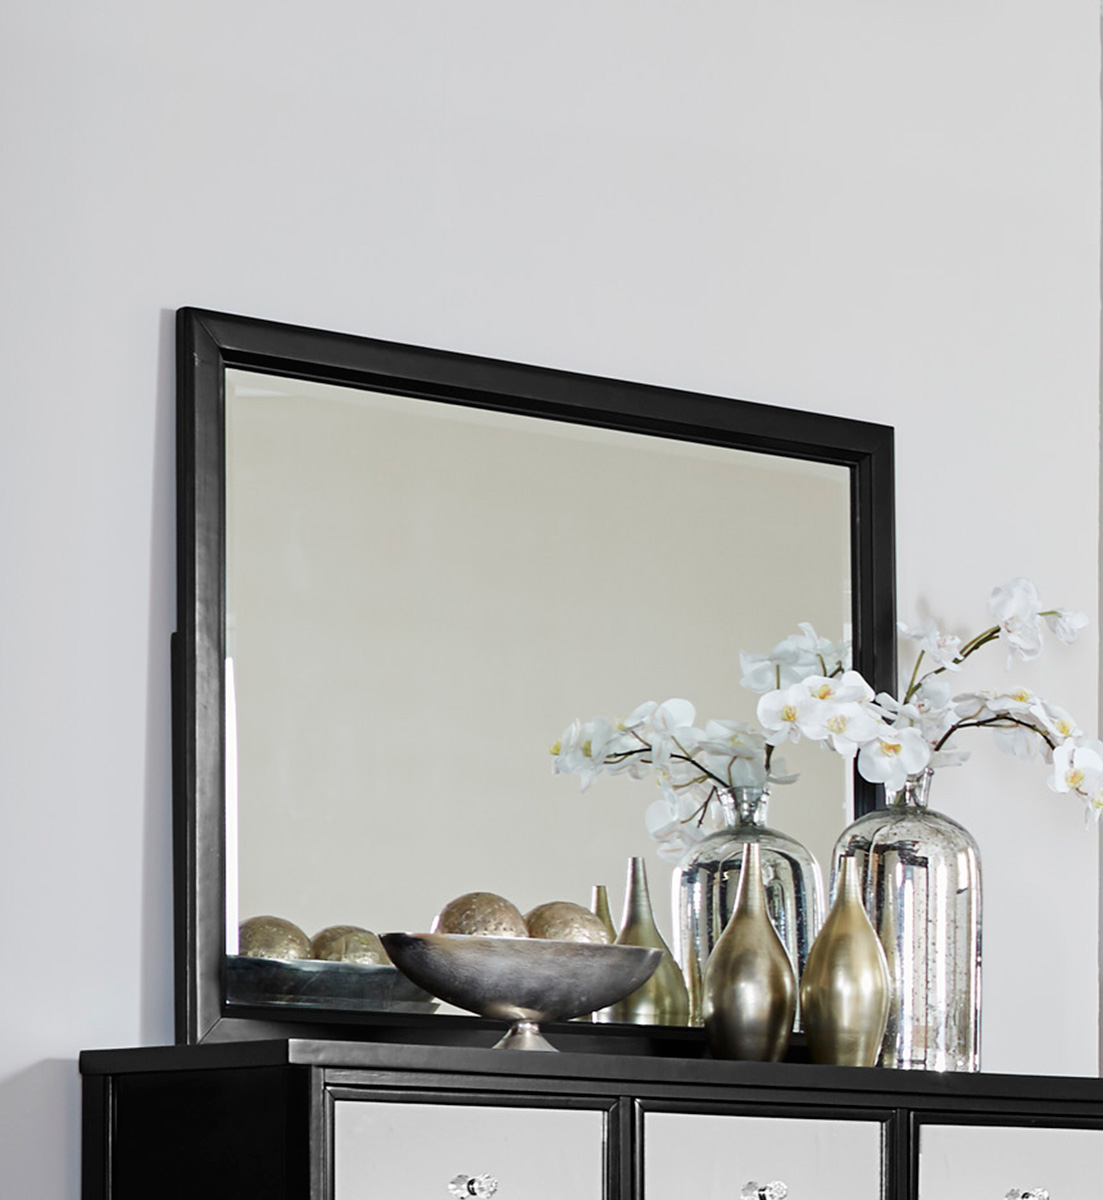 Homelegance Odelia Mirror - Black